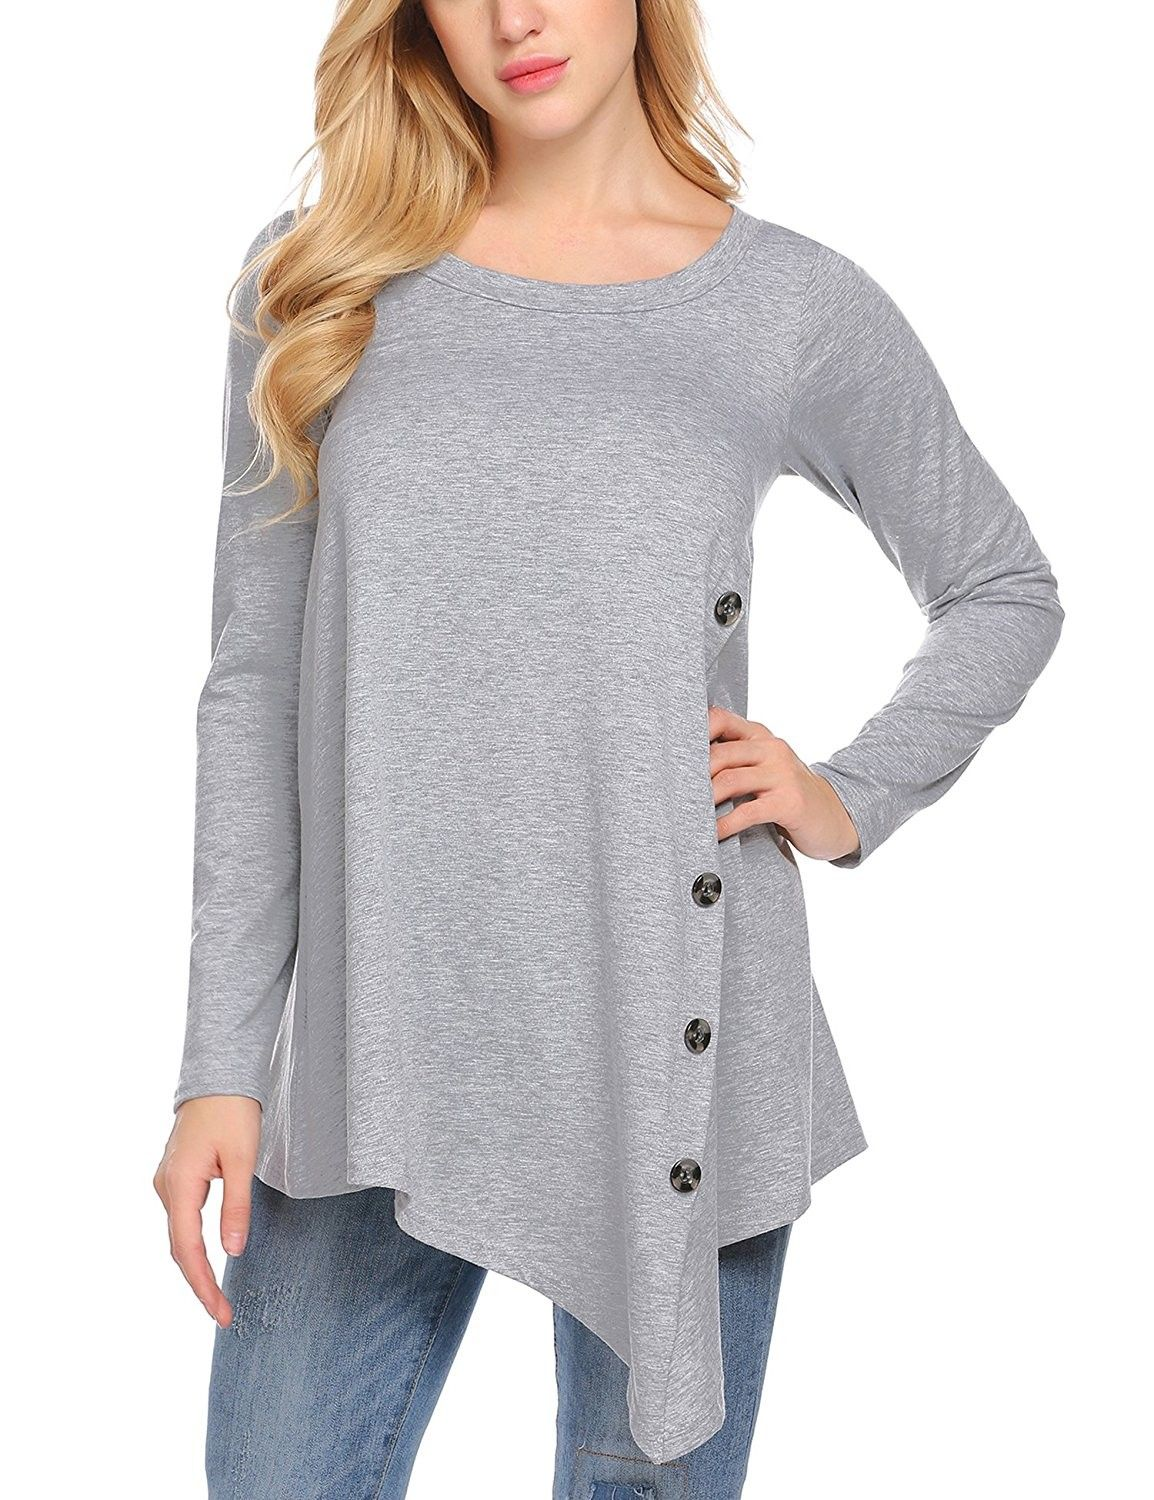 a0916c44a50 Womens Casual Long Sleeve Round Neck Button Asymmetrical Pleated T ...